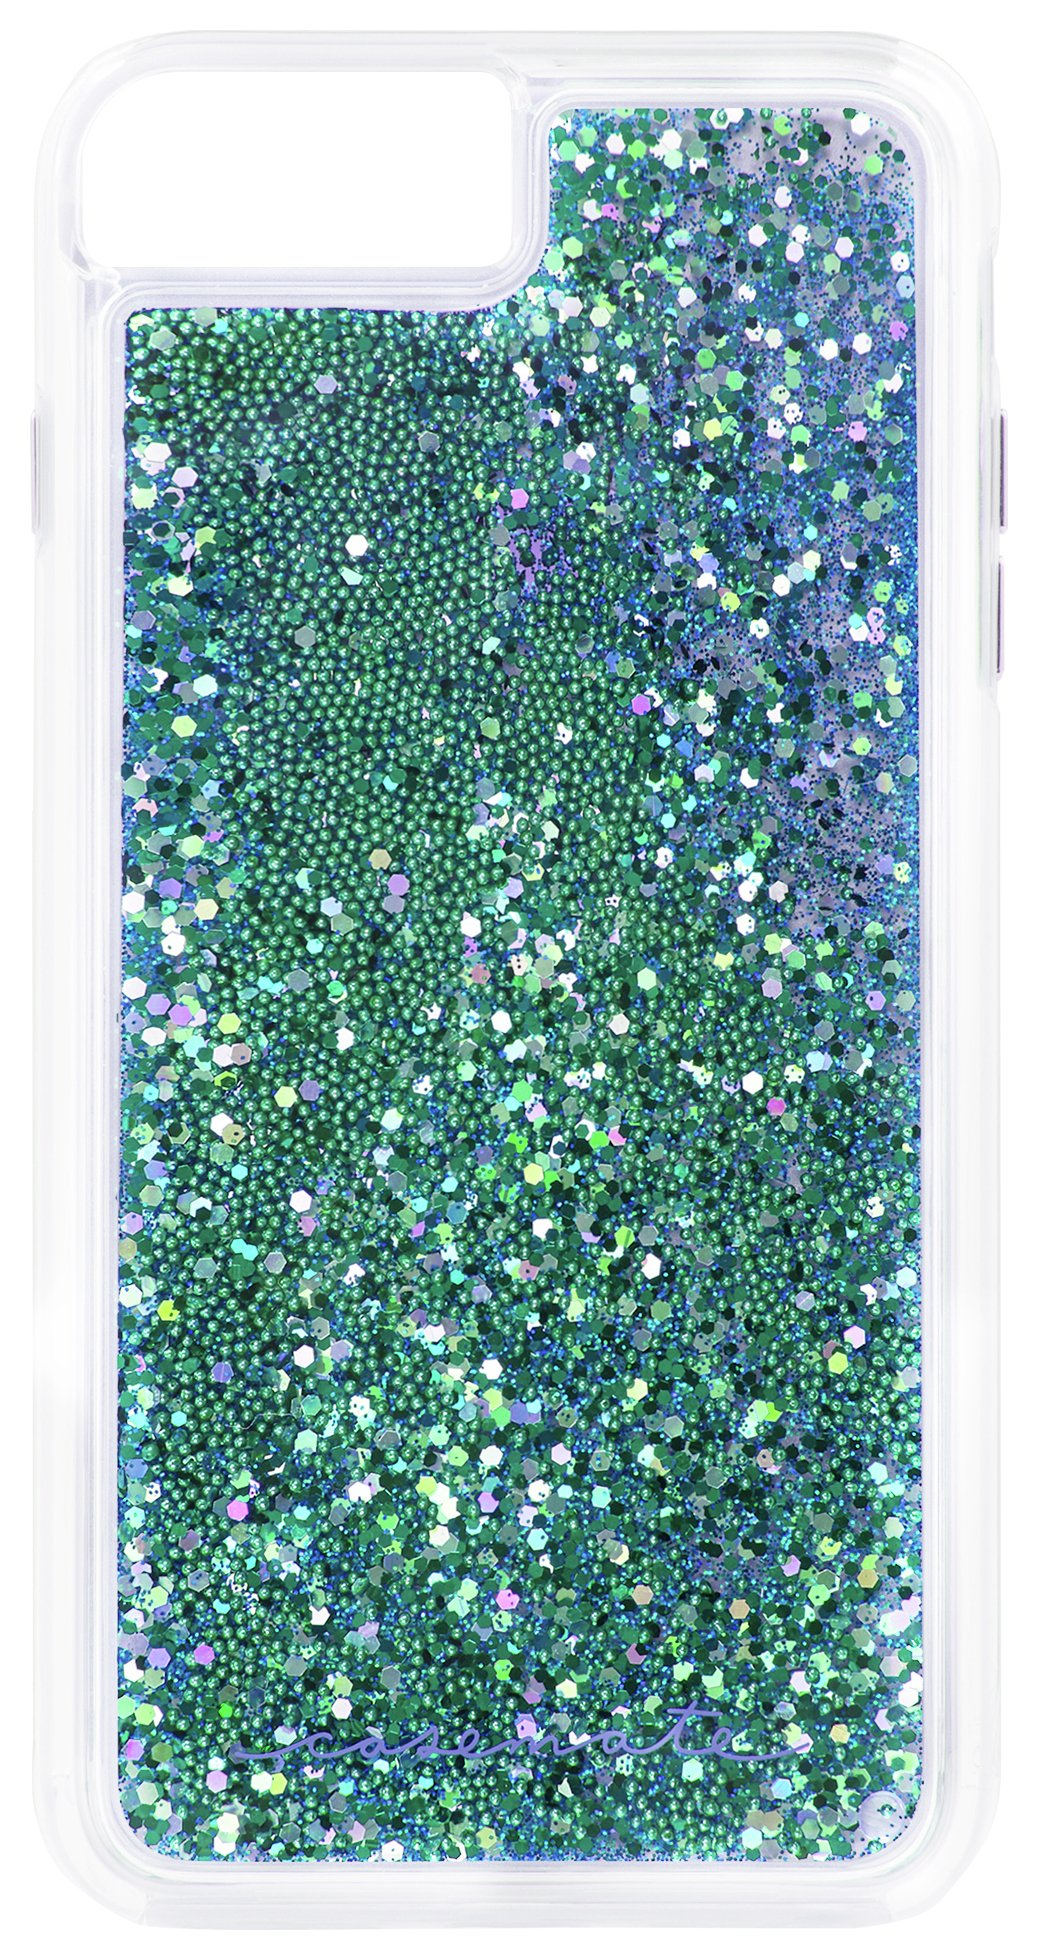 hot sale online 1b85a 60e22 Case-Mate Waterfall iPhone 6+/ 6s+/ 7+ / 8+ Case - Teal (7377059 ...